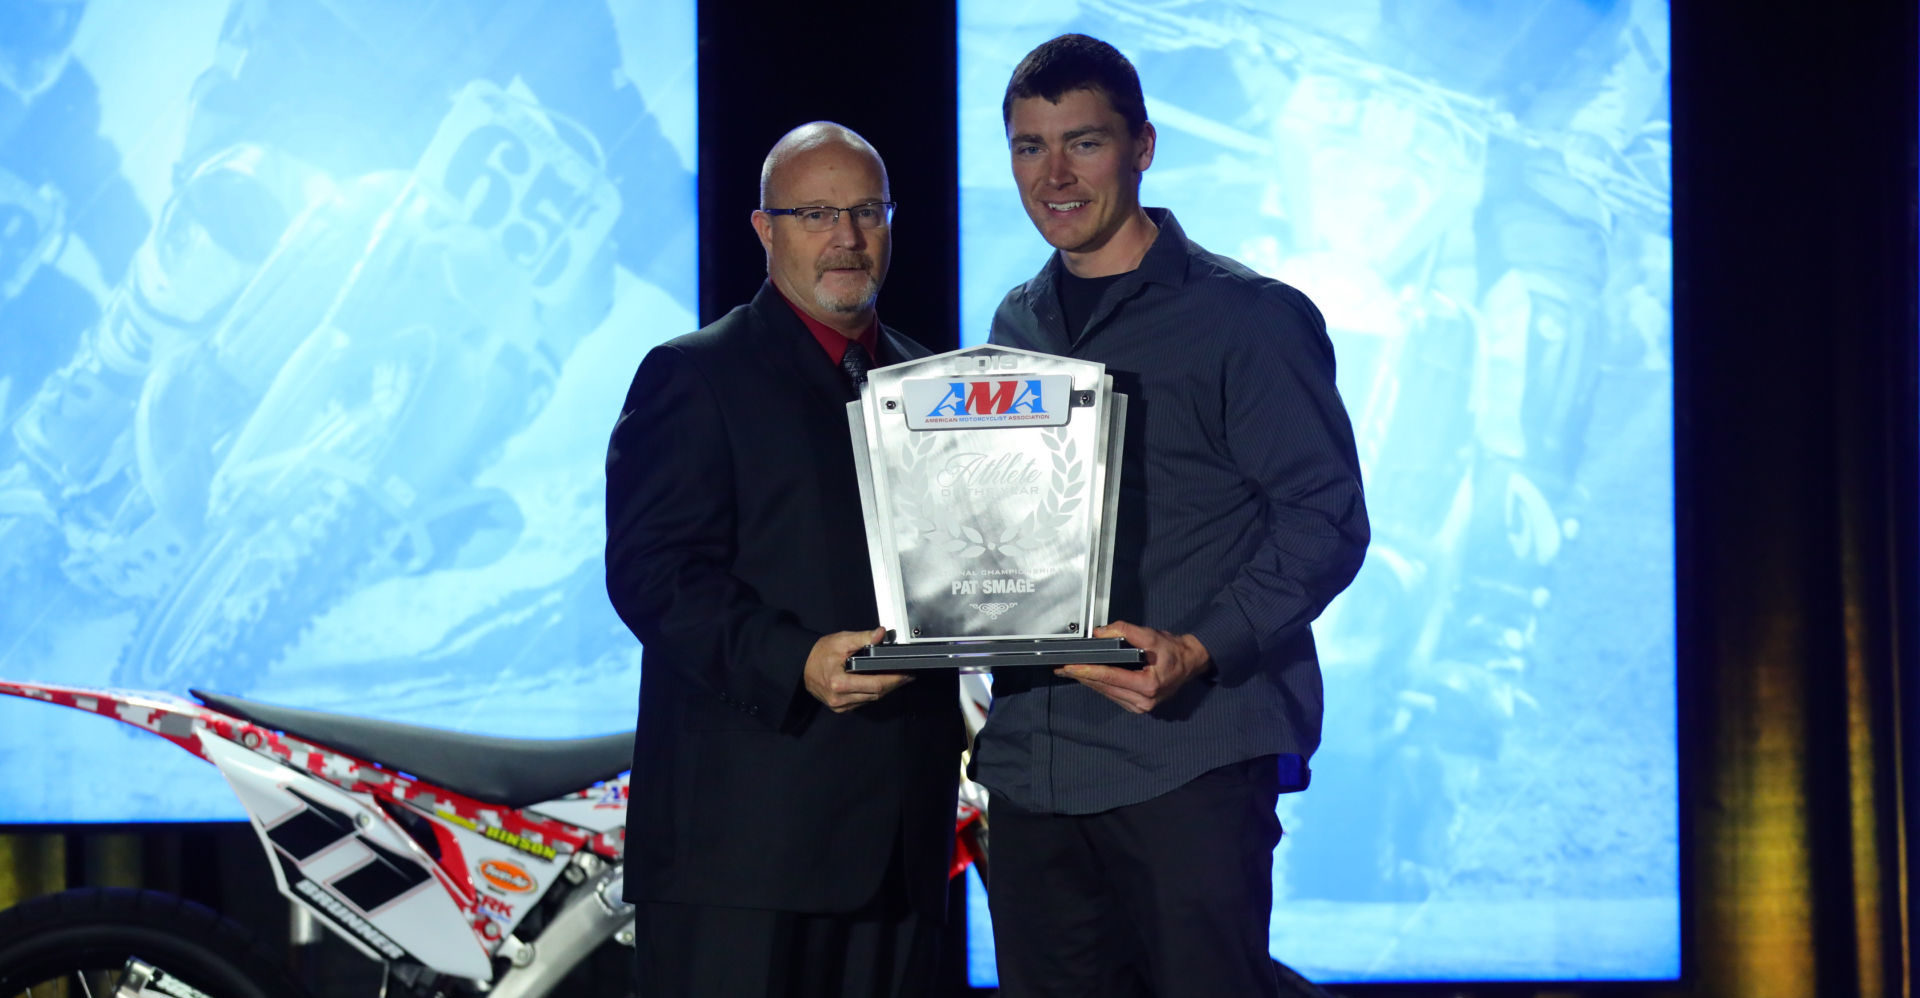 AMA Director of Racing Kevin Crowther (left) presents the 2019 AMA Athlete of the Year from AMA National Championship Series Award to 11-time AMA/NATC MotoTrials Pro Class National Champion Pat Smage at the 2019 KTM AMA Championship Banquet. Photo by Jeff Kardas, courtesy of AMA.